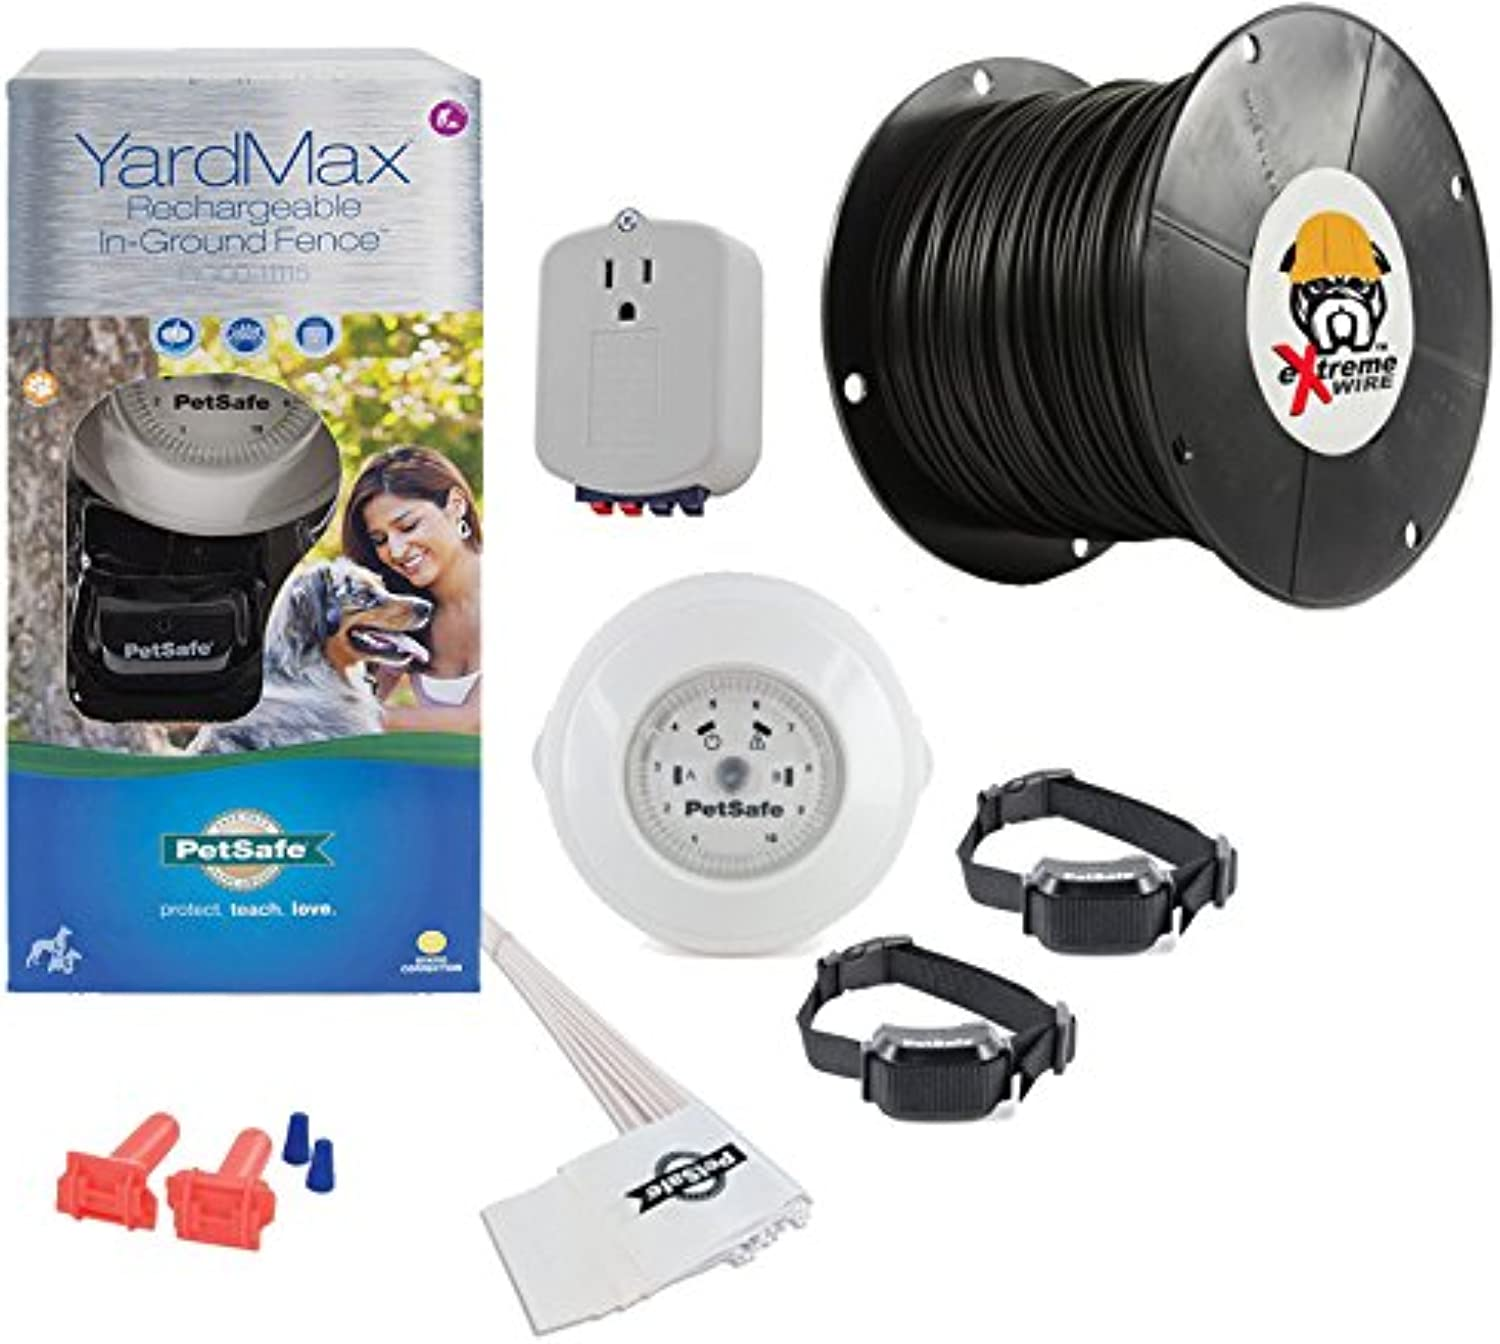 PetSafe Yardmax Rechargeable InGround Dog Fence  Upgraded eXtreme Brand Wire